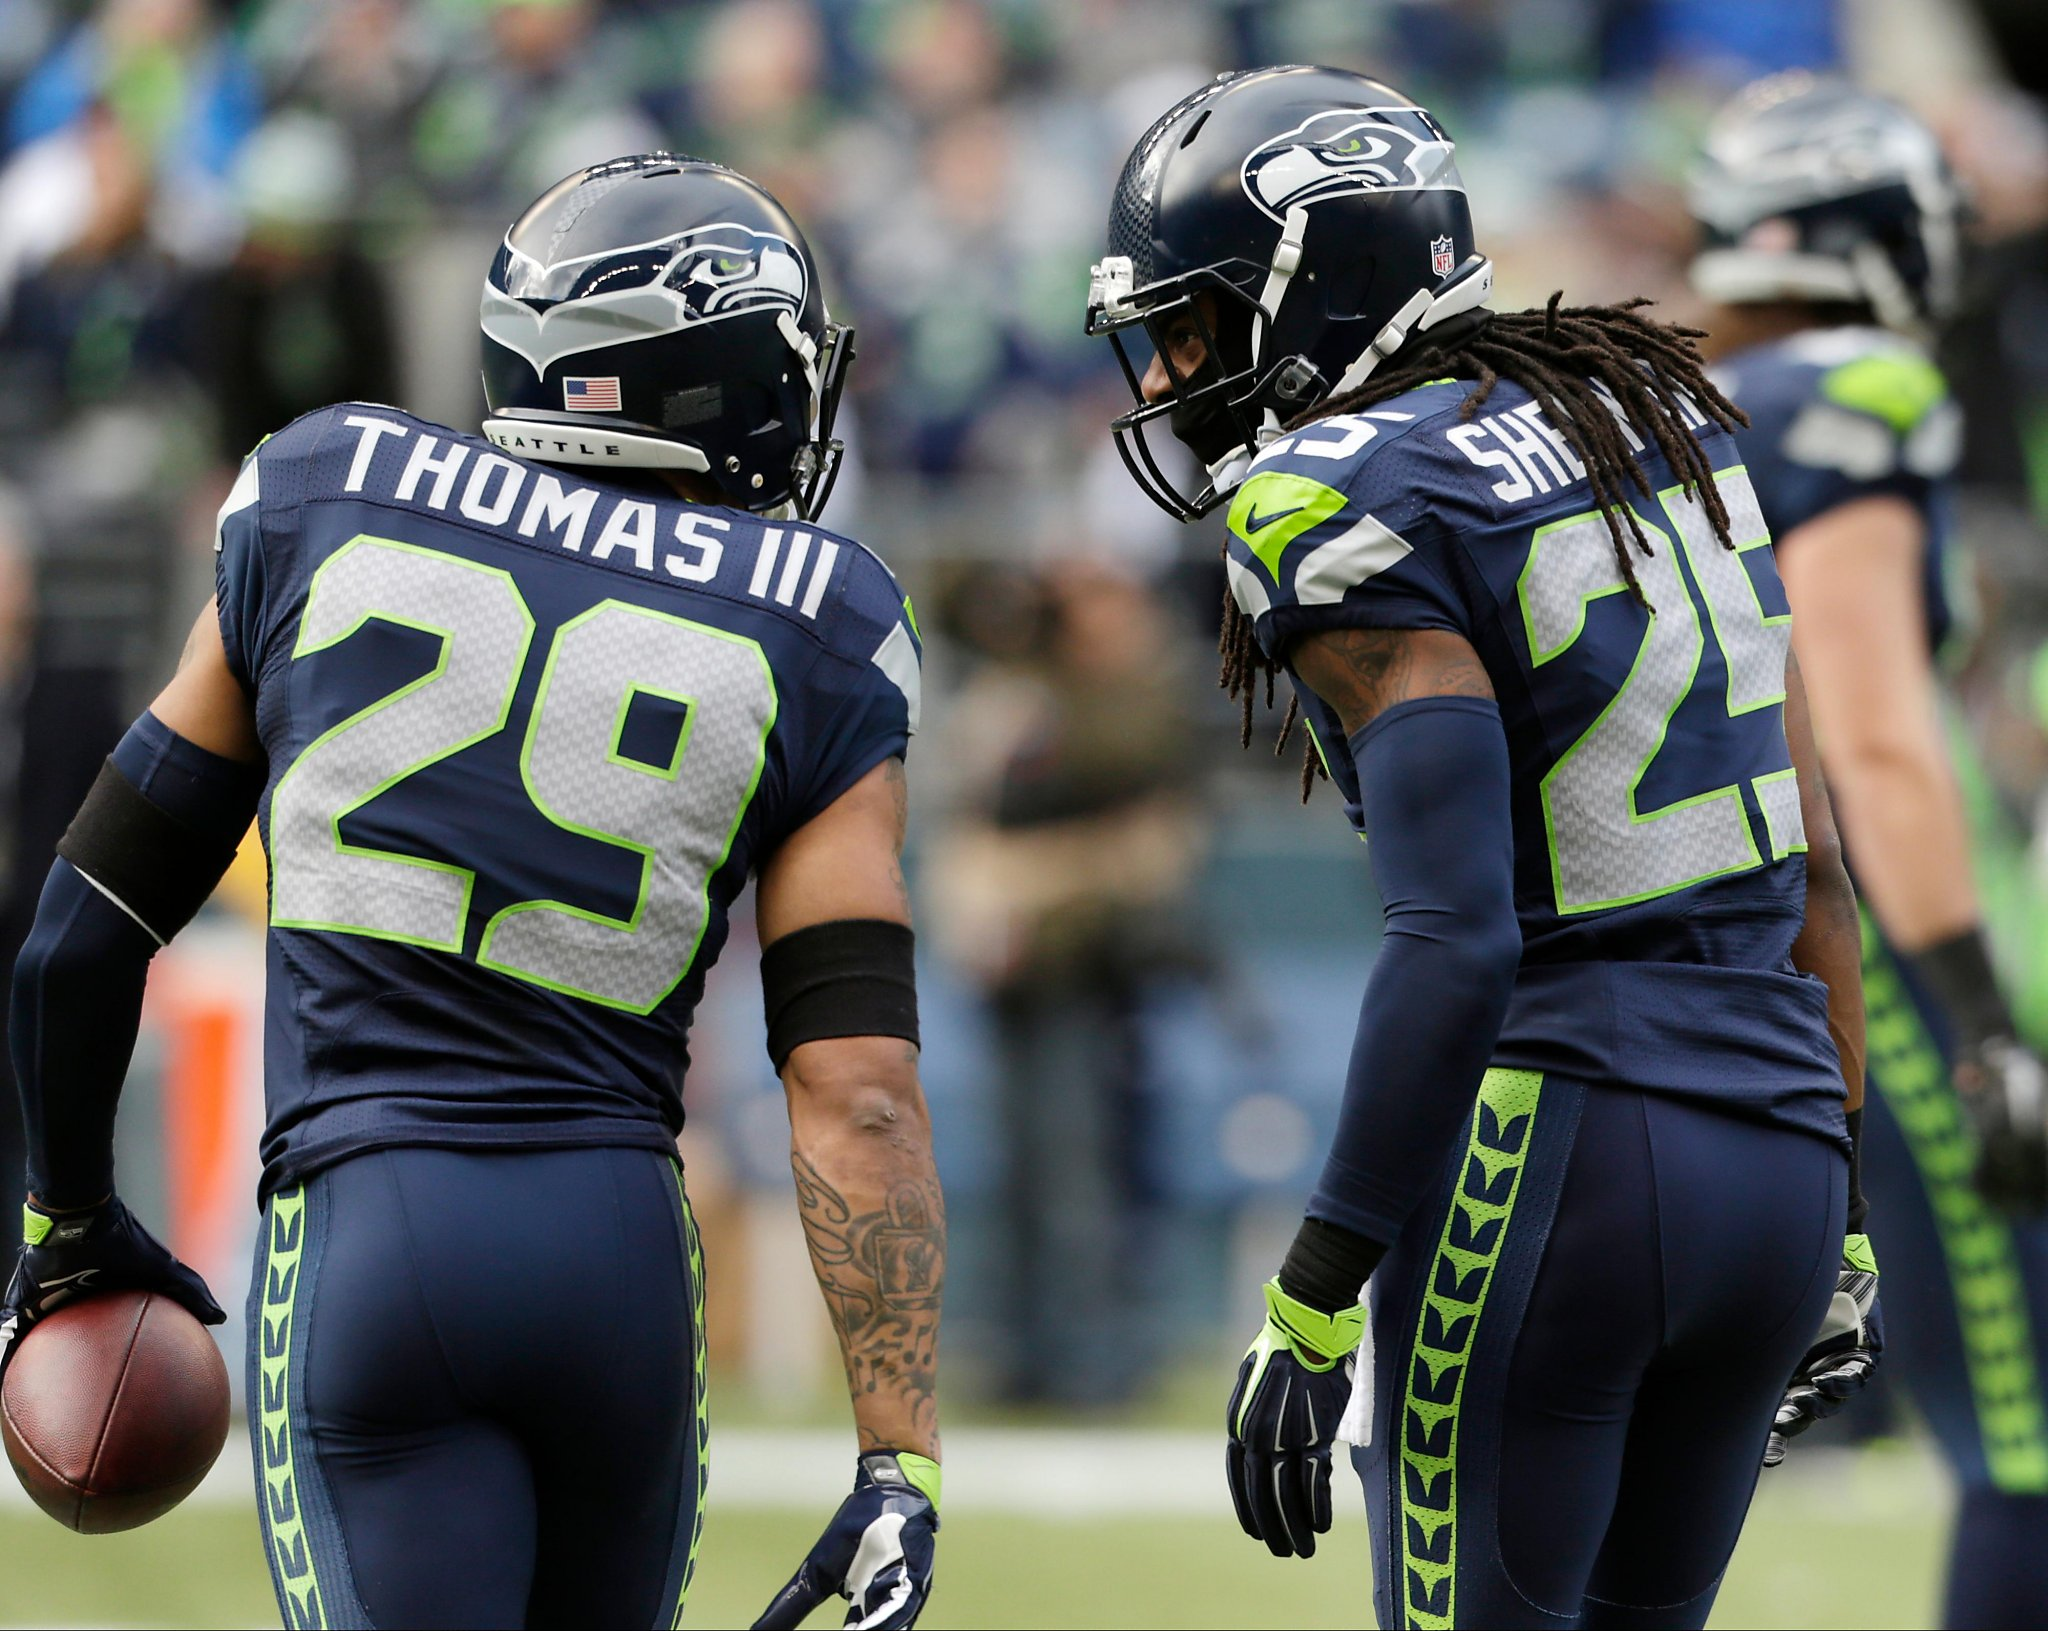 PFF: Sherman highlights current, former Seattle Seahawks named top NFL players of 2010s